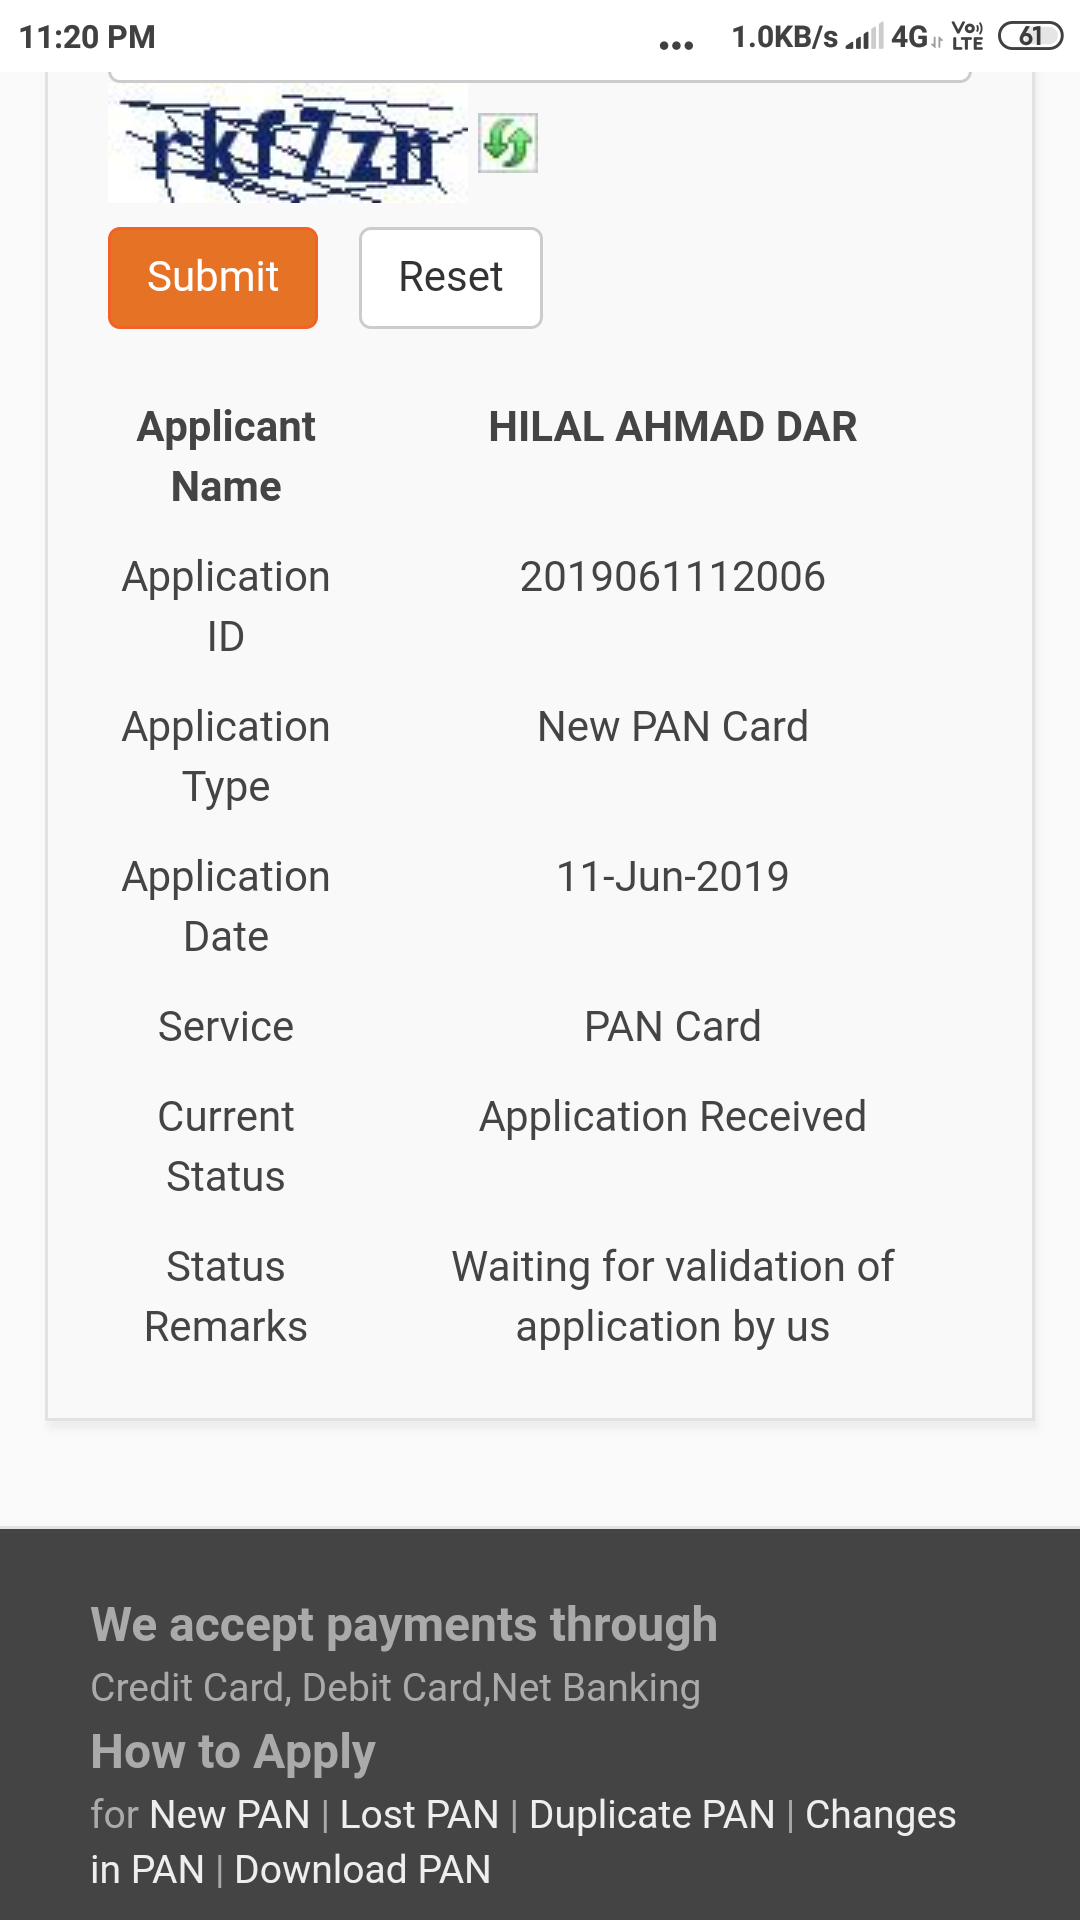 I checked my pan status there shows waiting for application validation by us u